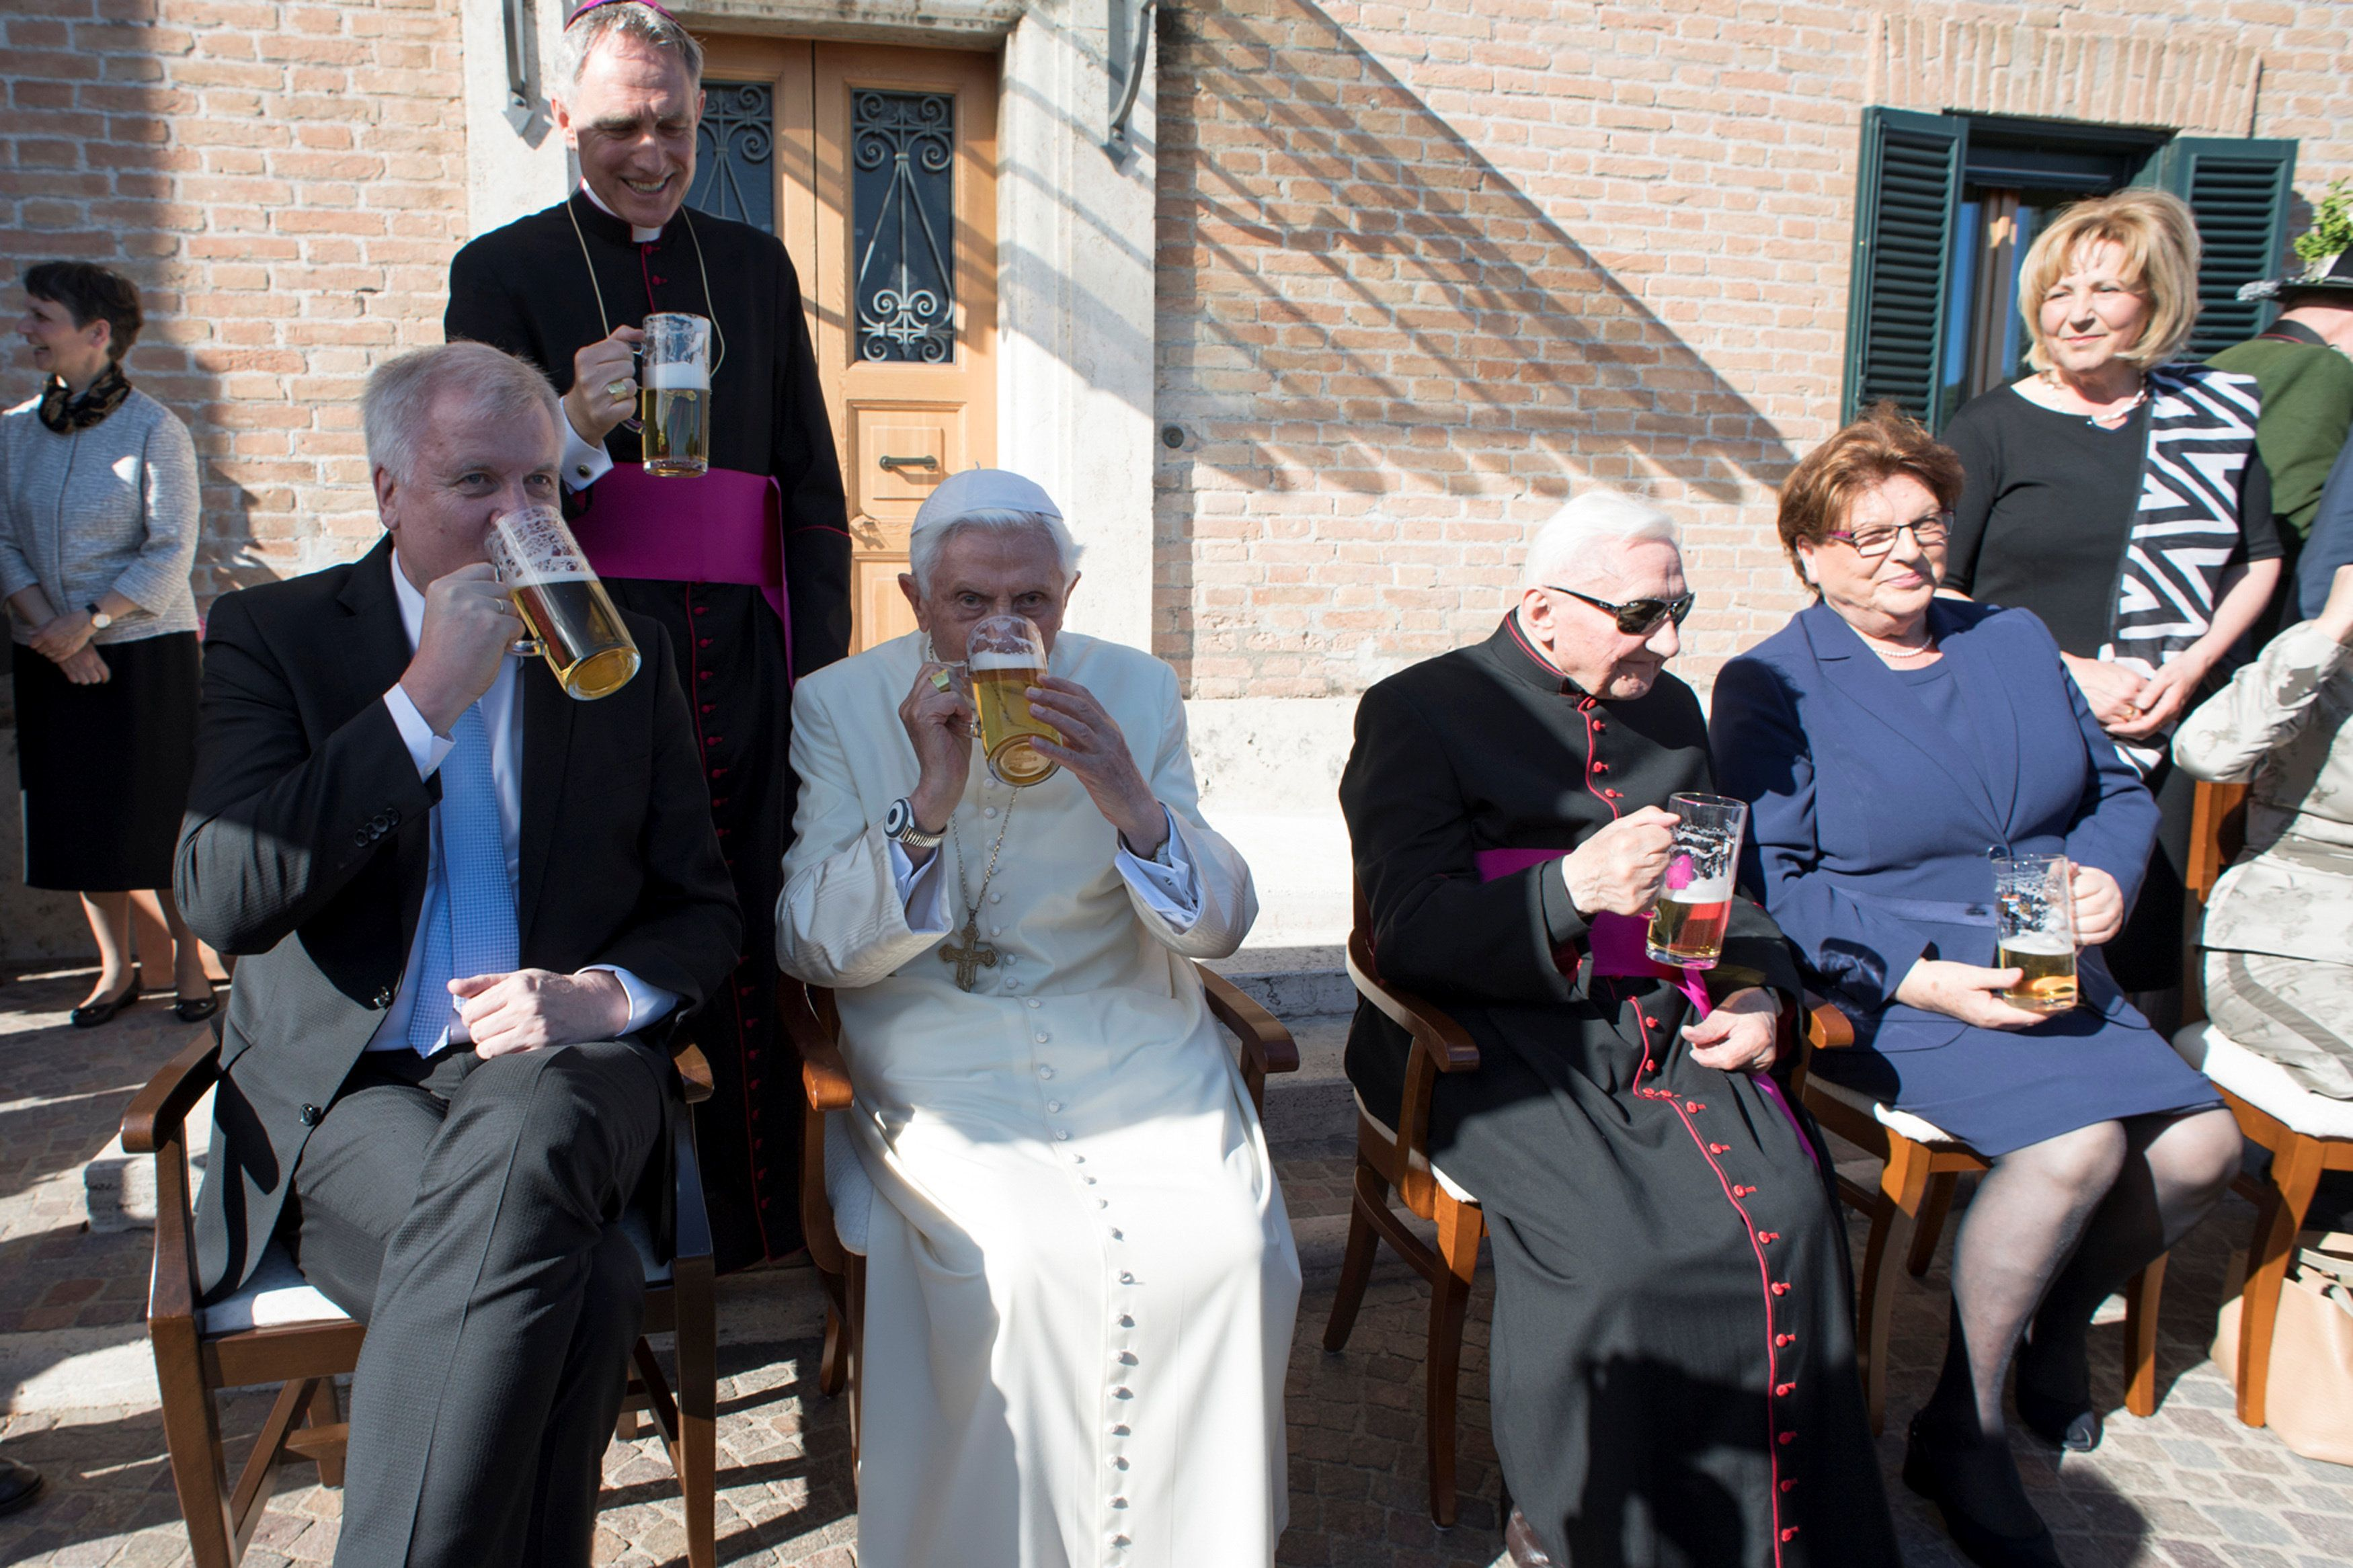 The party was held at a monastery on Vatican grounds.